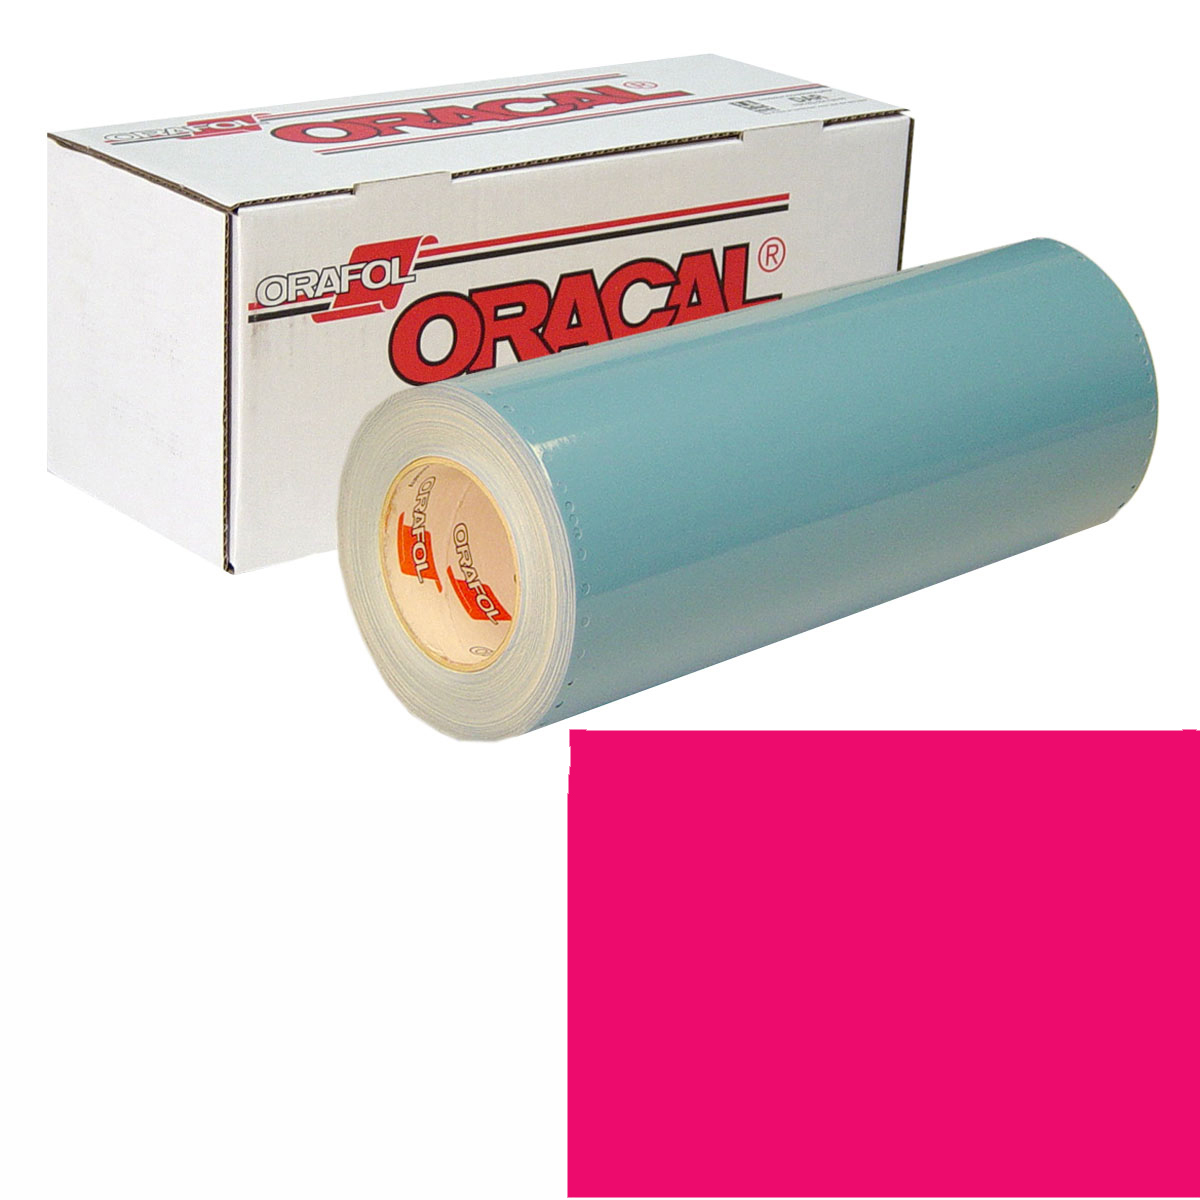 ORACAL 751 Unp 24in X 50yd 041 Pink